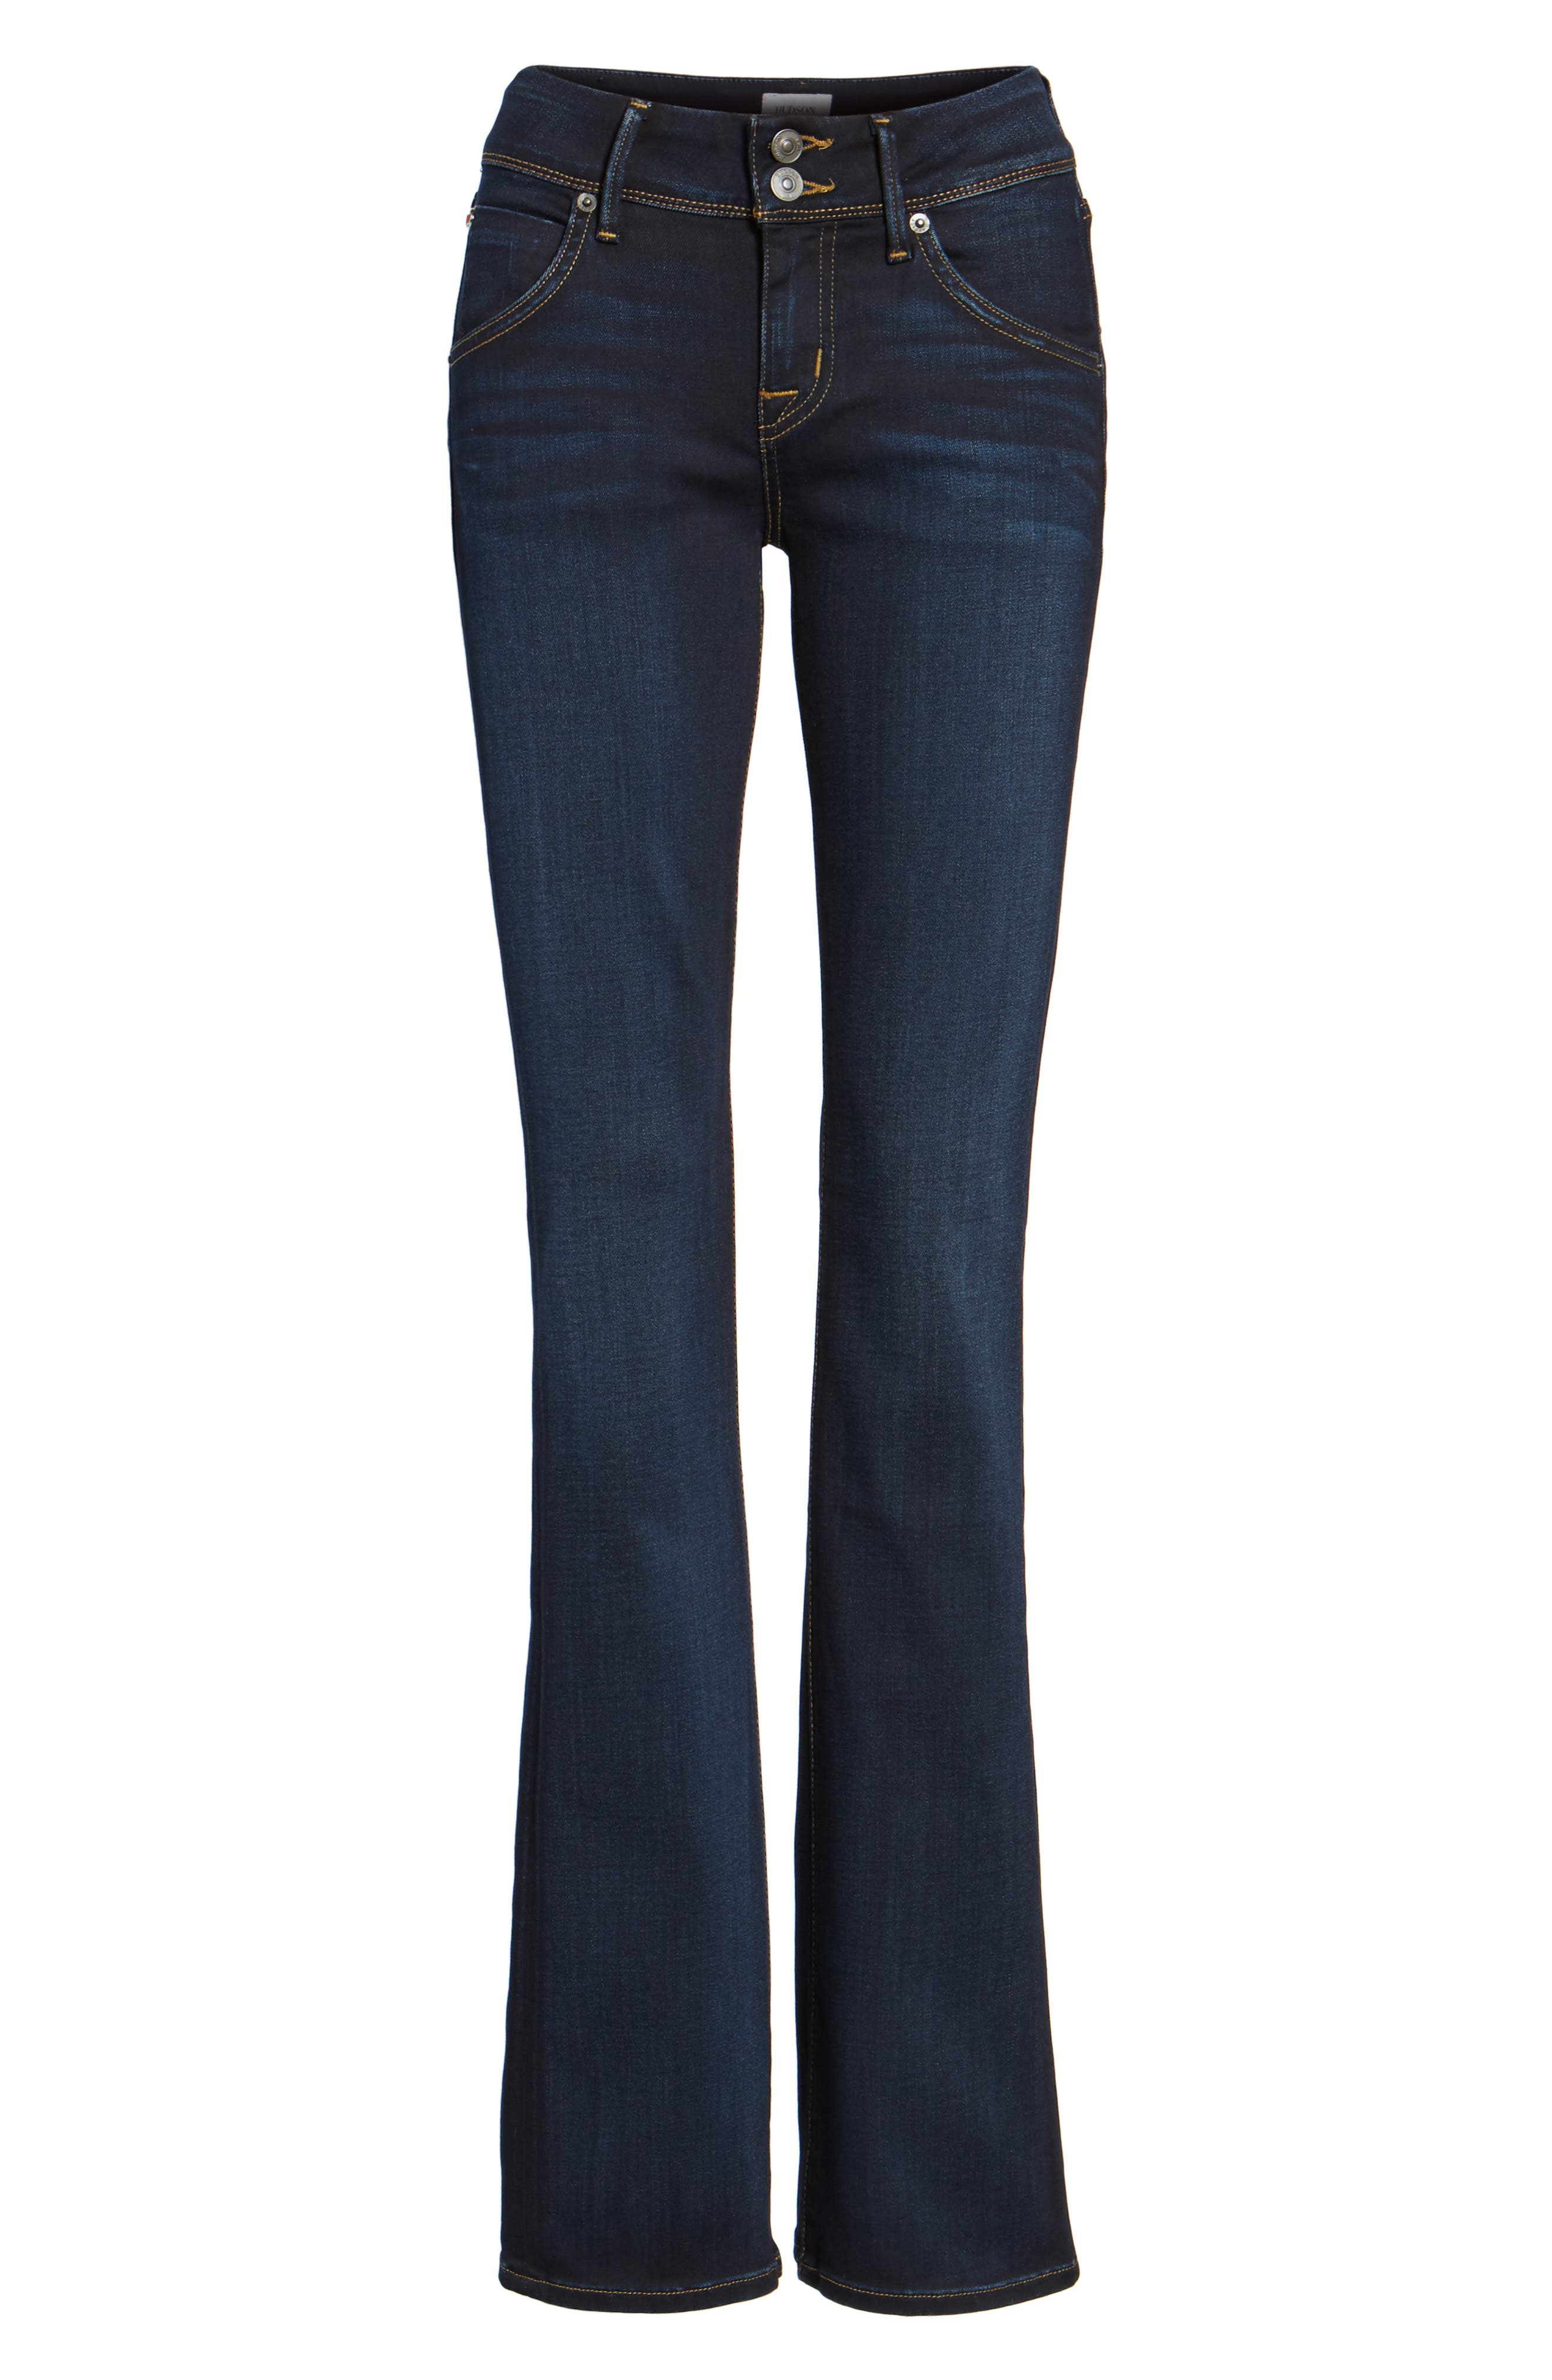 HUDSON JEANS, 'Elysian - Beth' Baby Bootcut Jeans, Main thumbnail 1, color, ORACLE